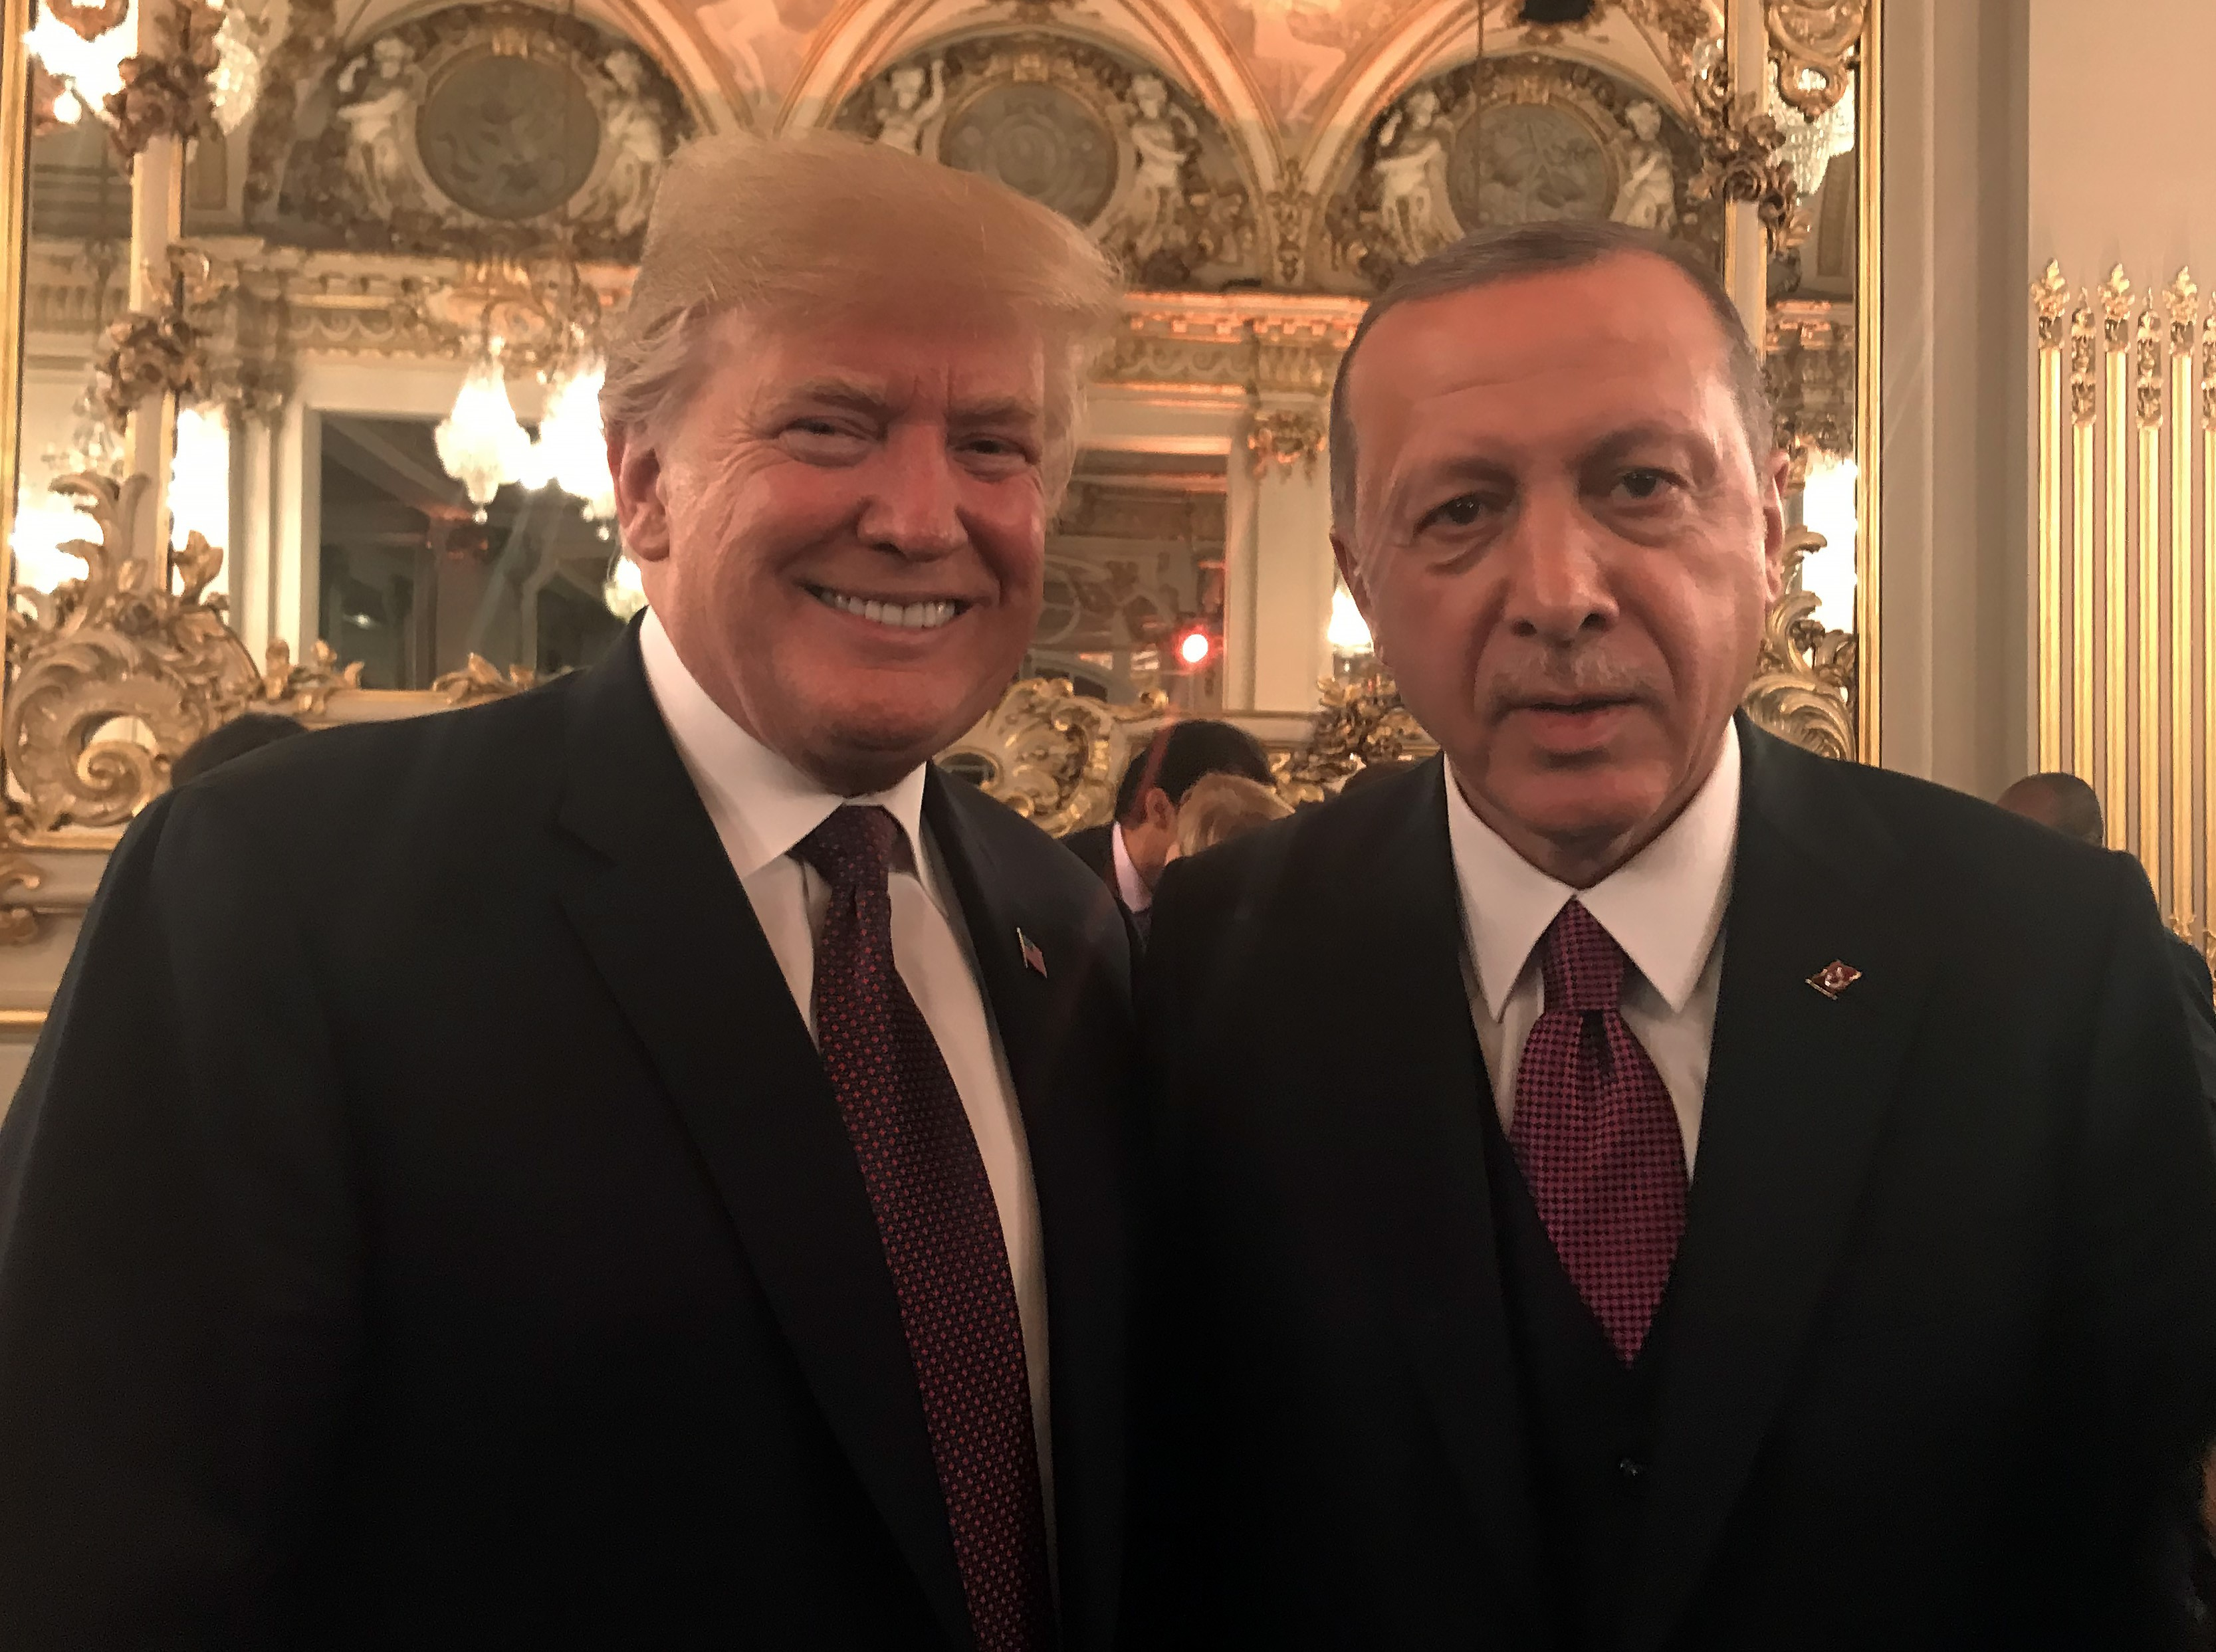 Trump and Erdoğan together for a photo.